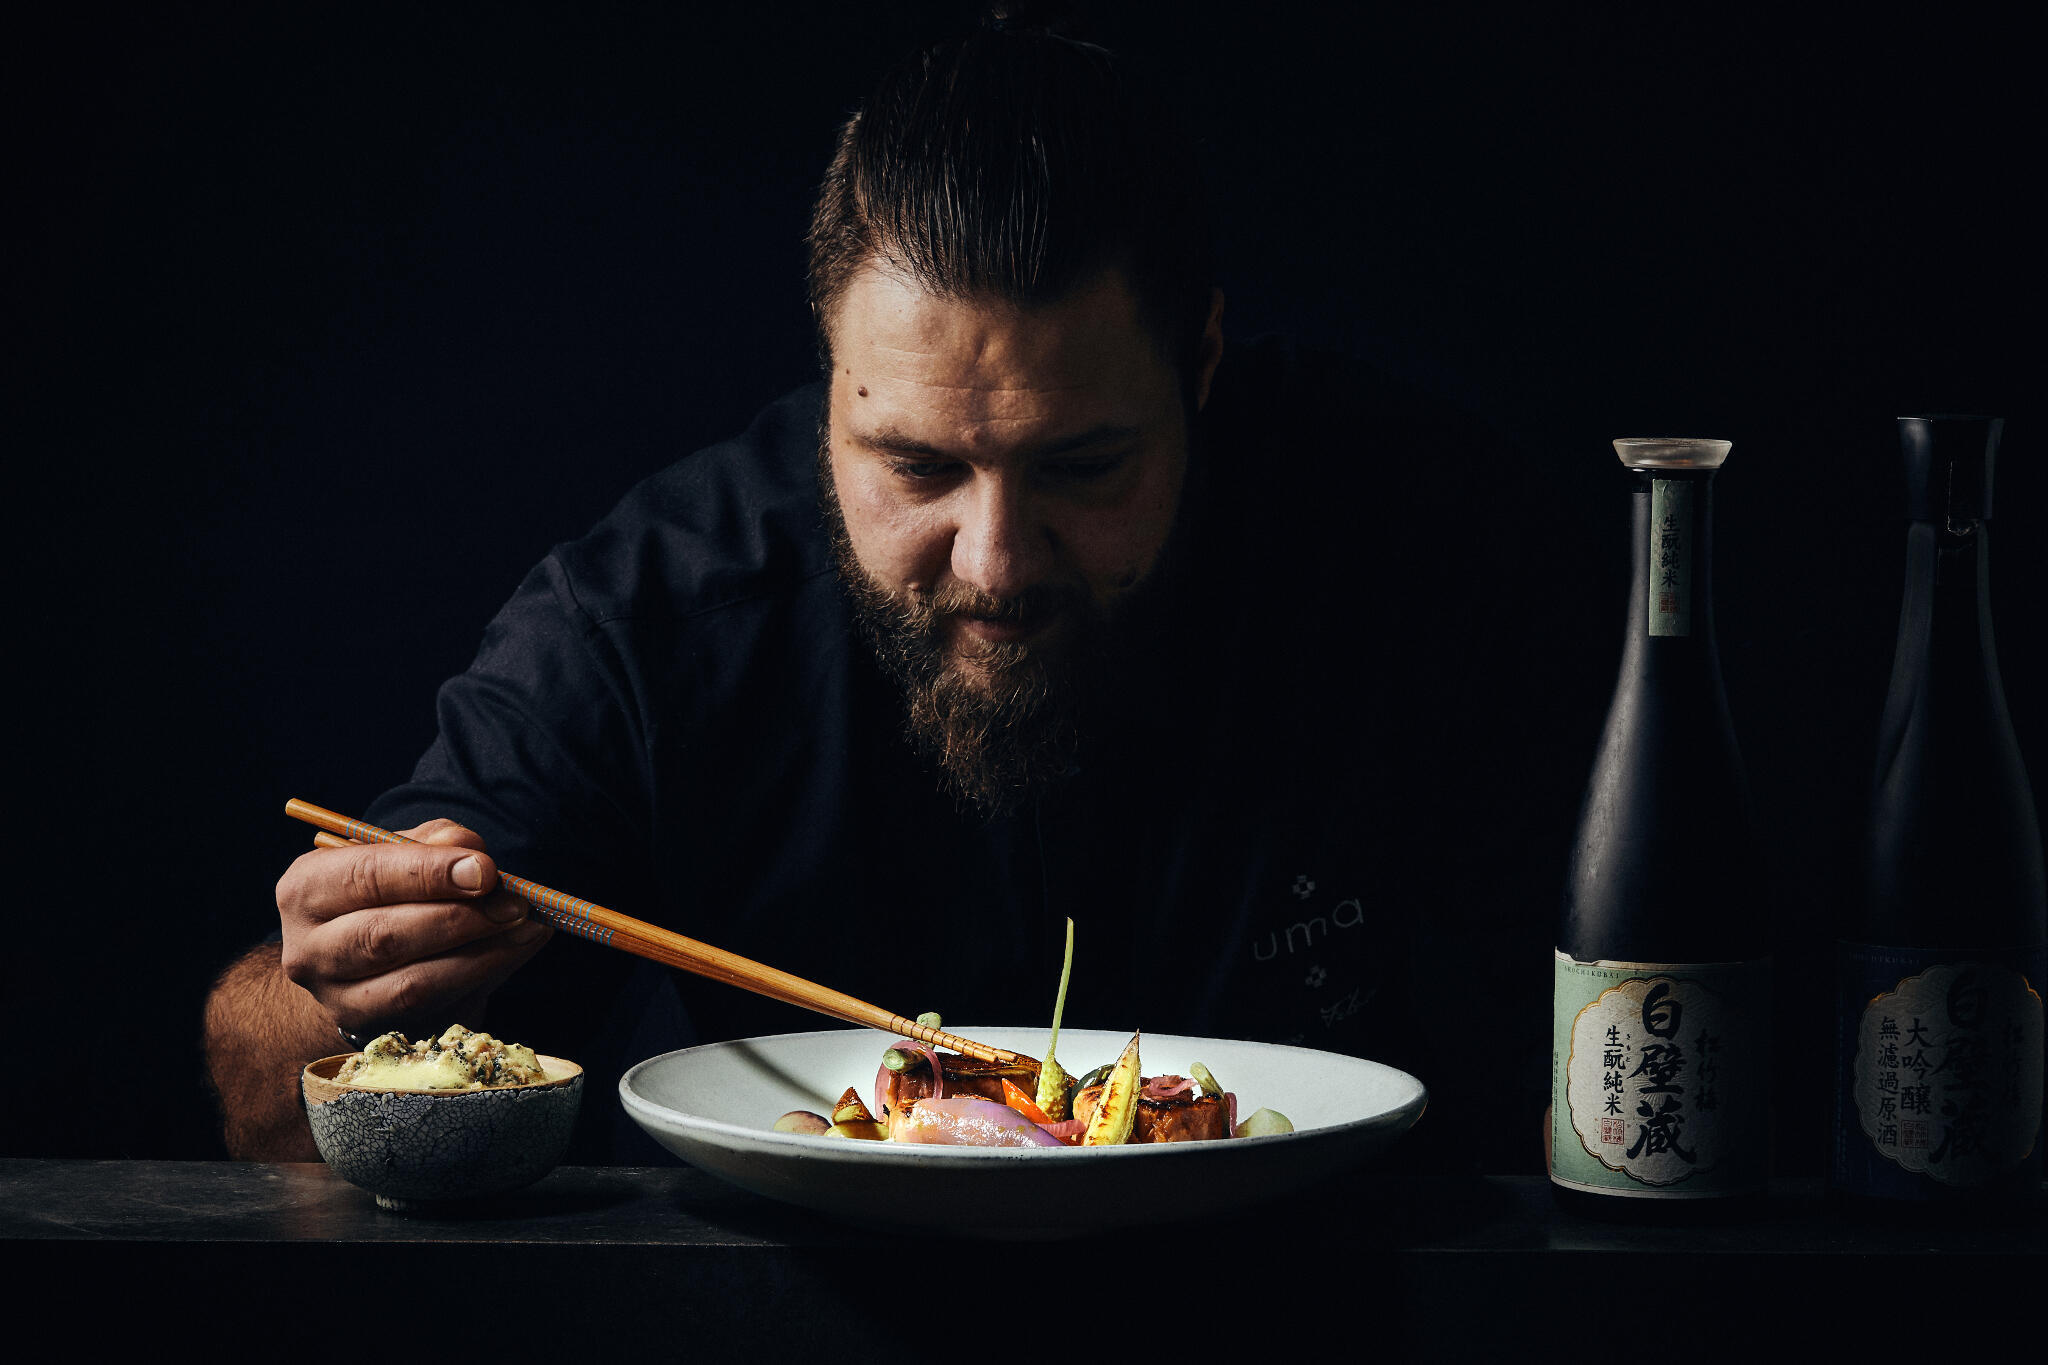 Chef Lucas Felzine aims to touch the soul of the people who taste his food